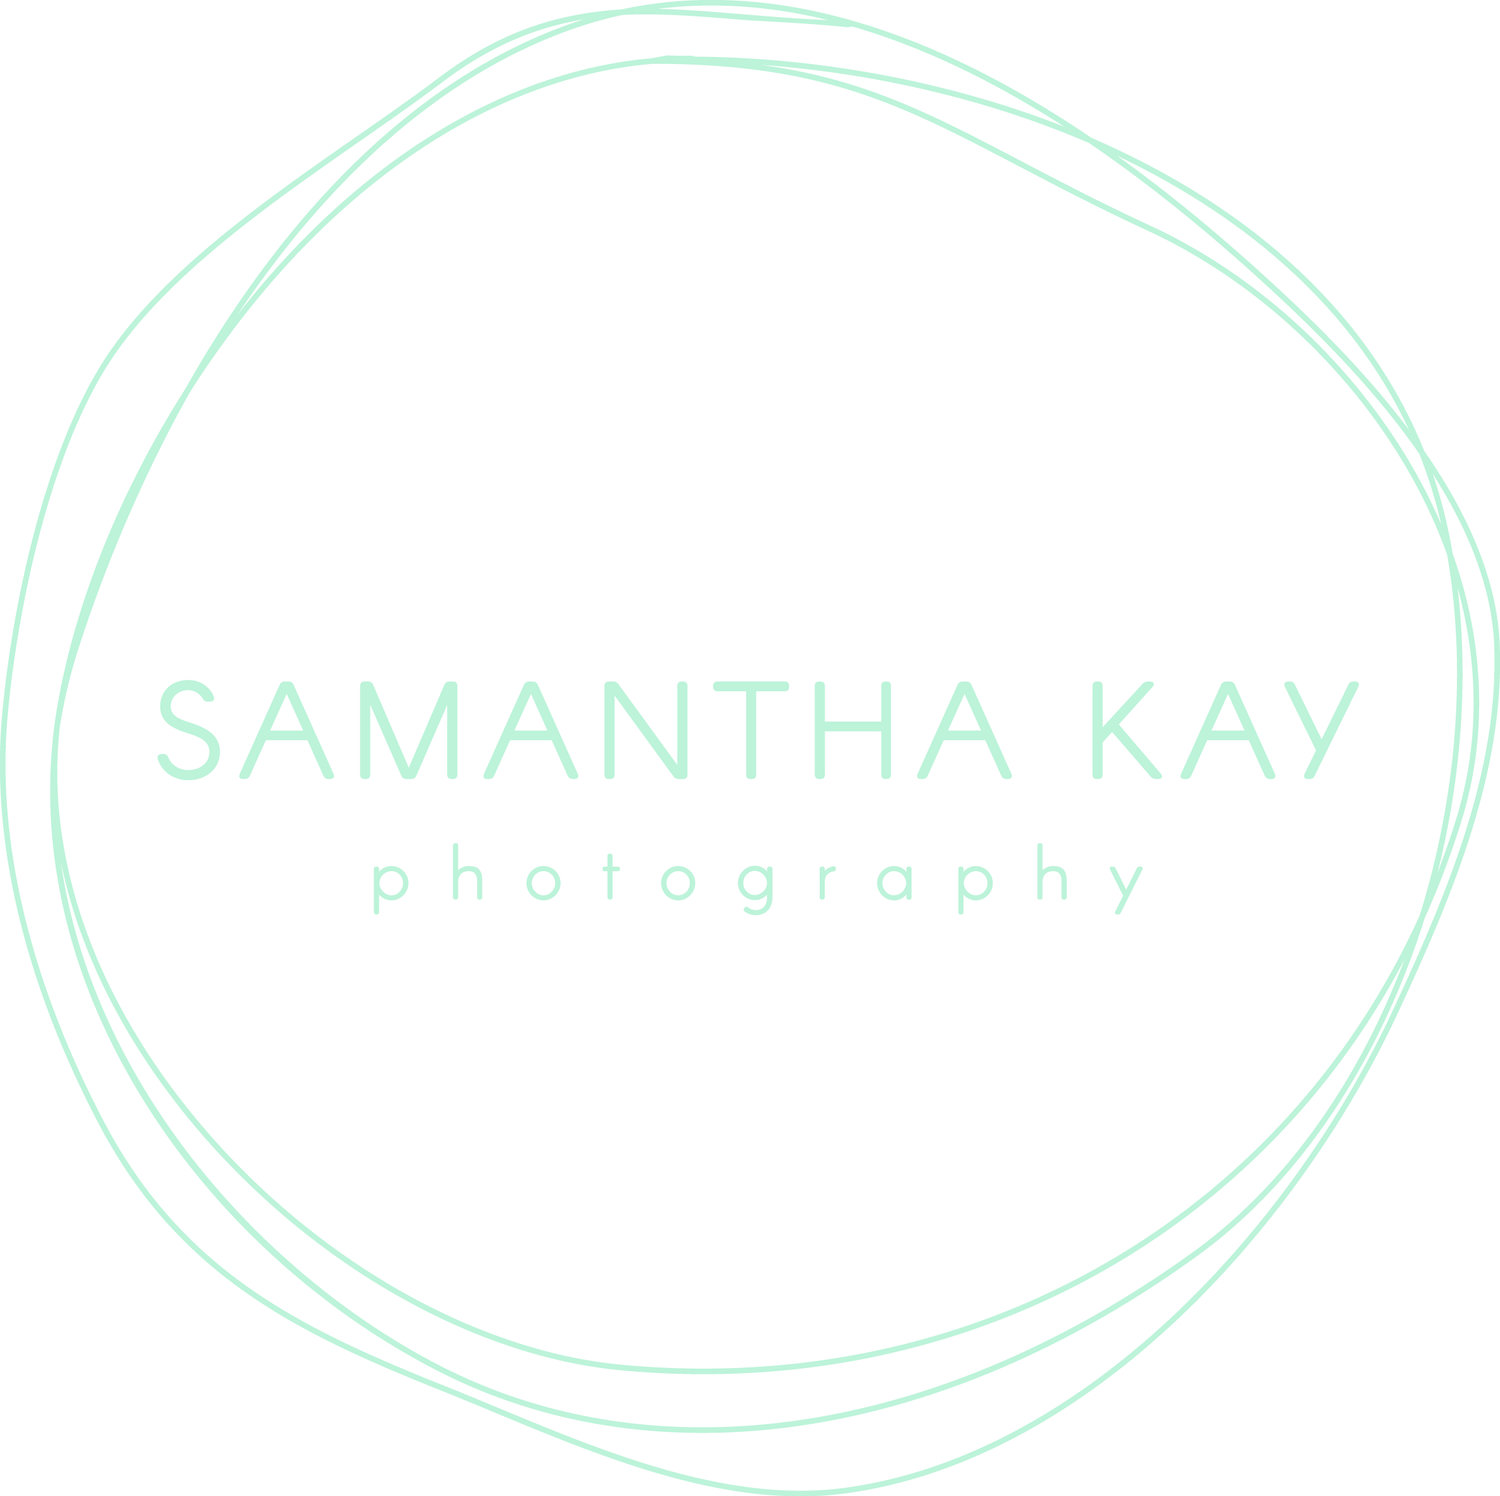 Samantha Kay Photography